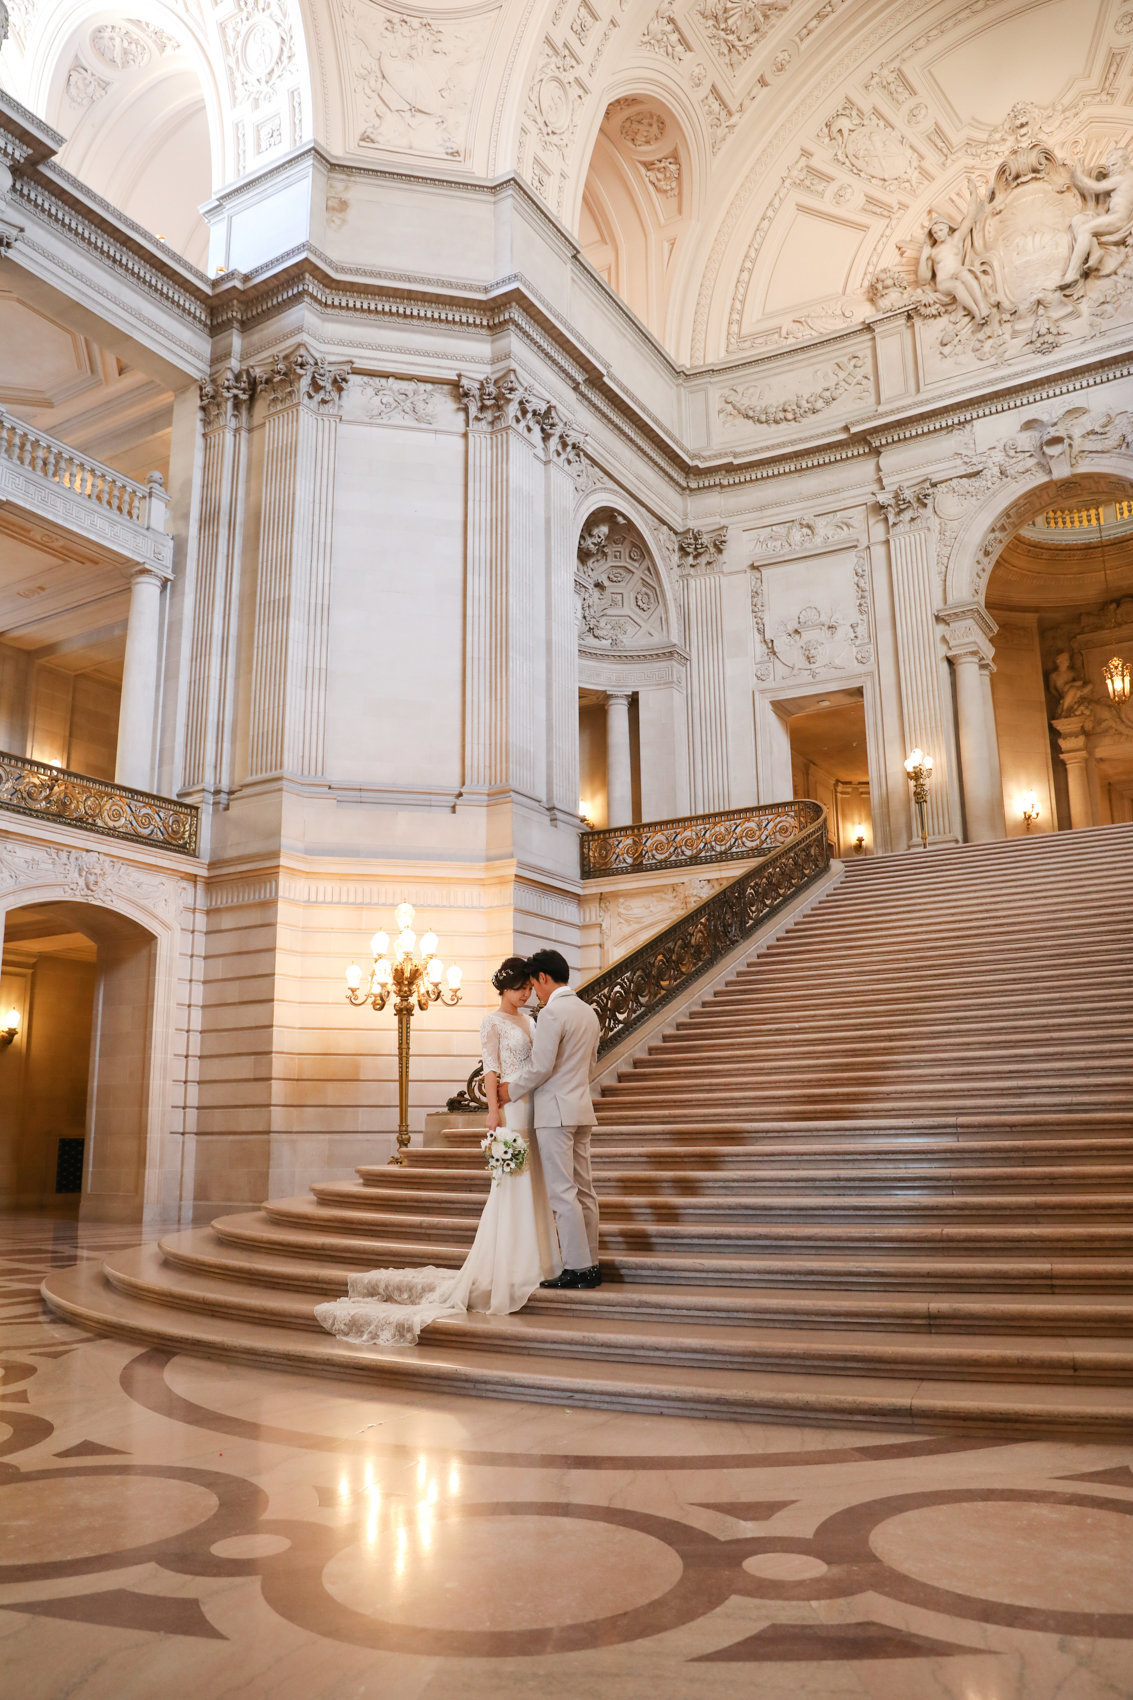 DeNeffe Studios Wedding photography, San Francisco